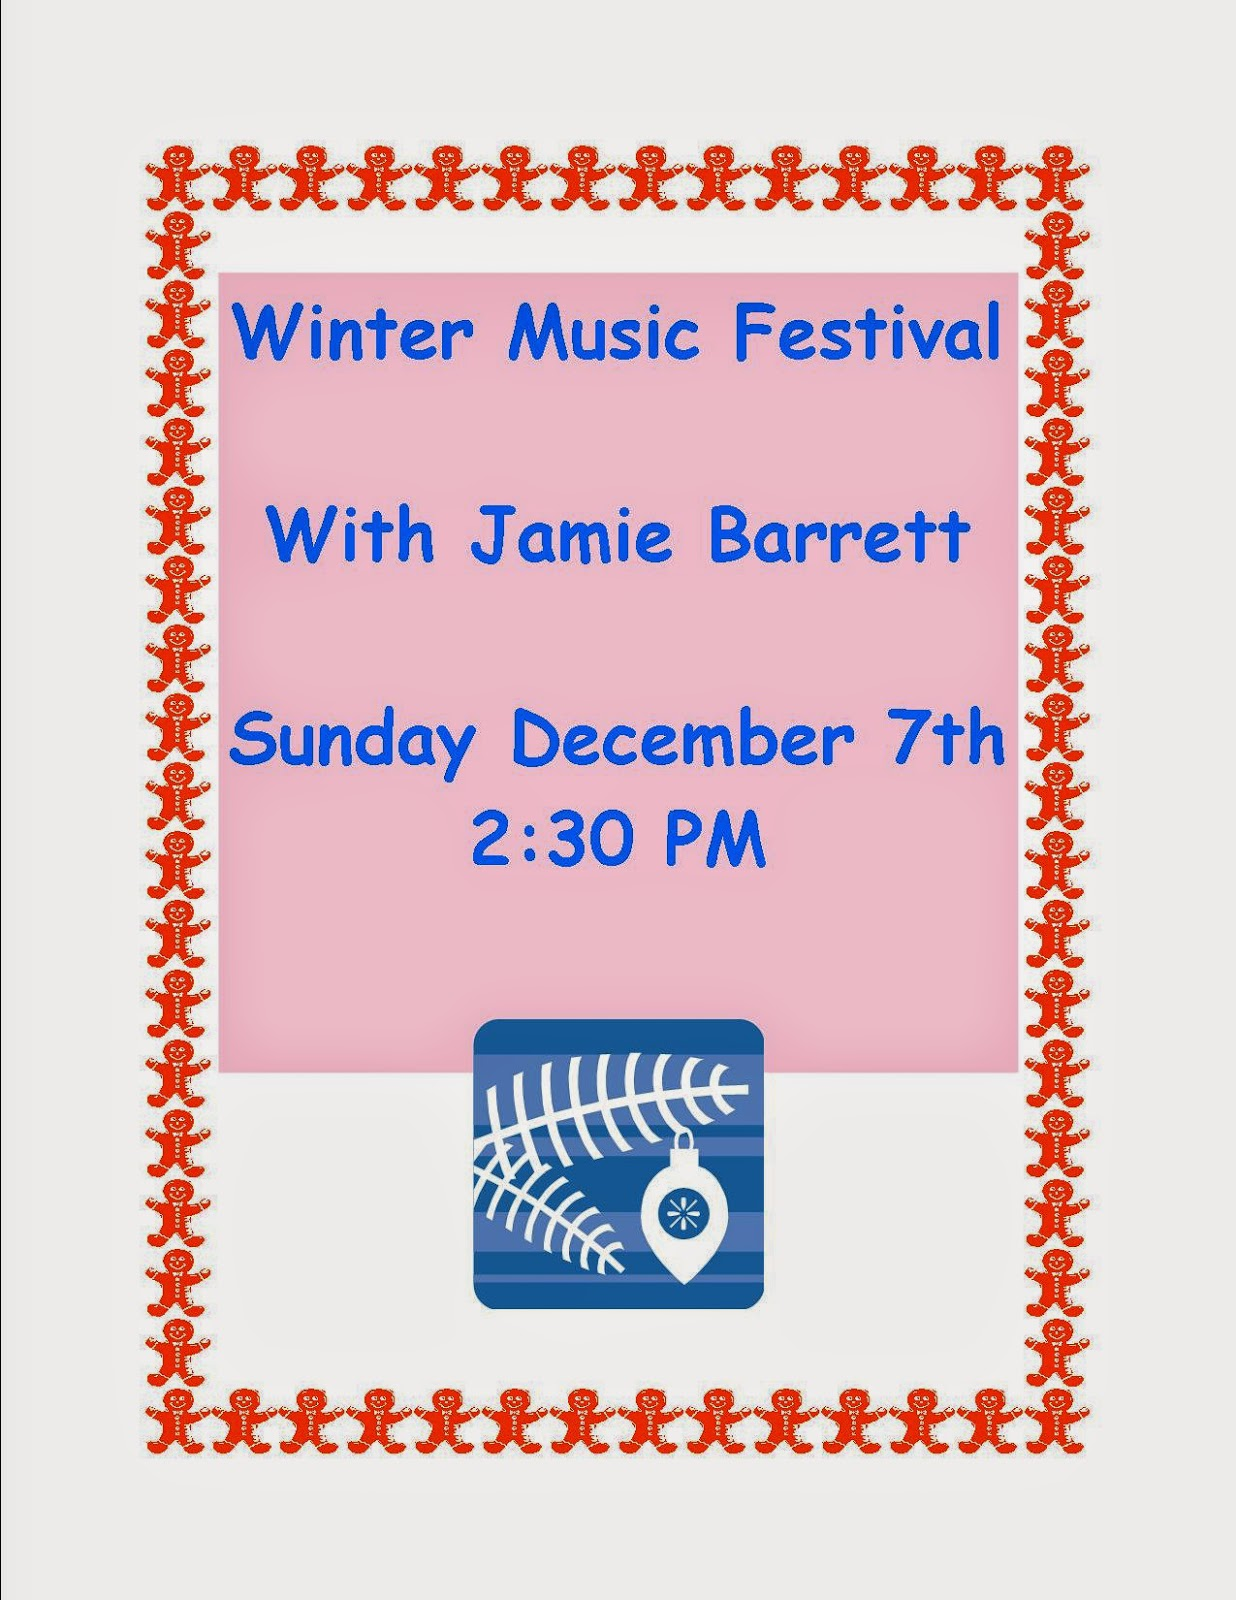 Jamie Barrett - Sun Dec 7 - 2:00 PM